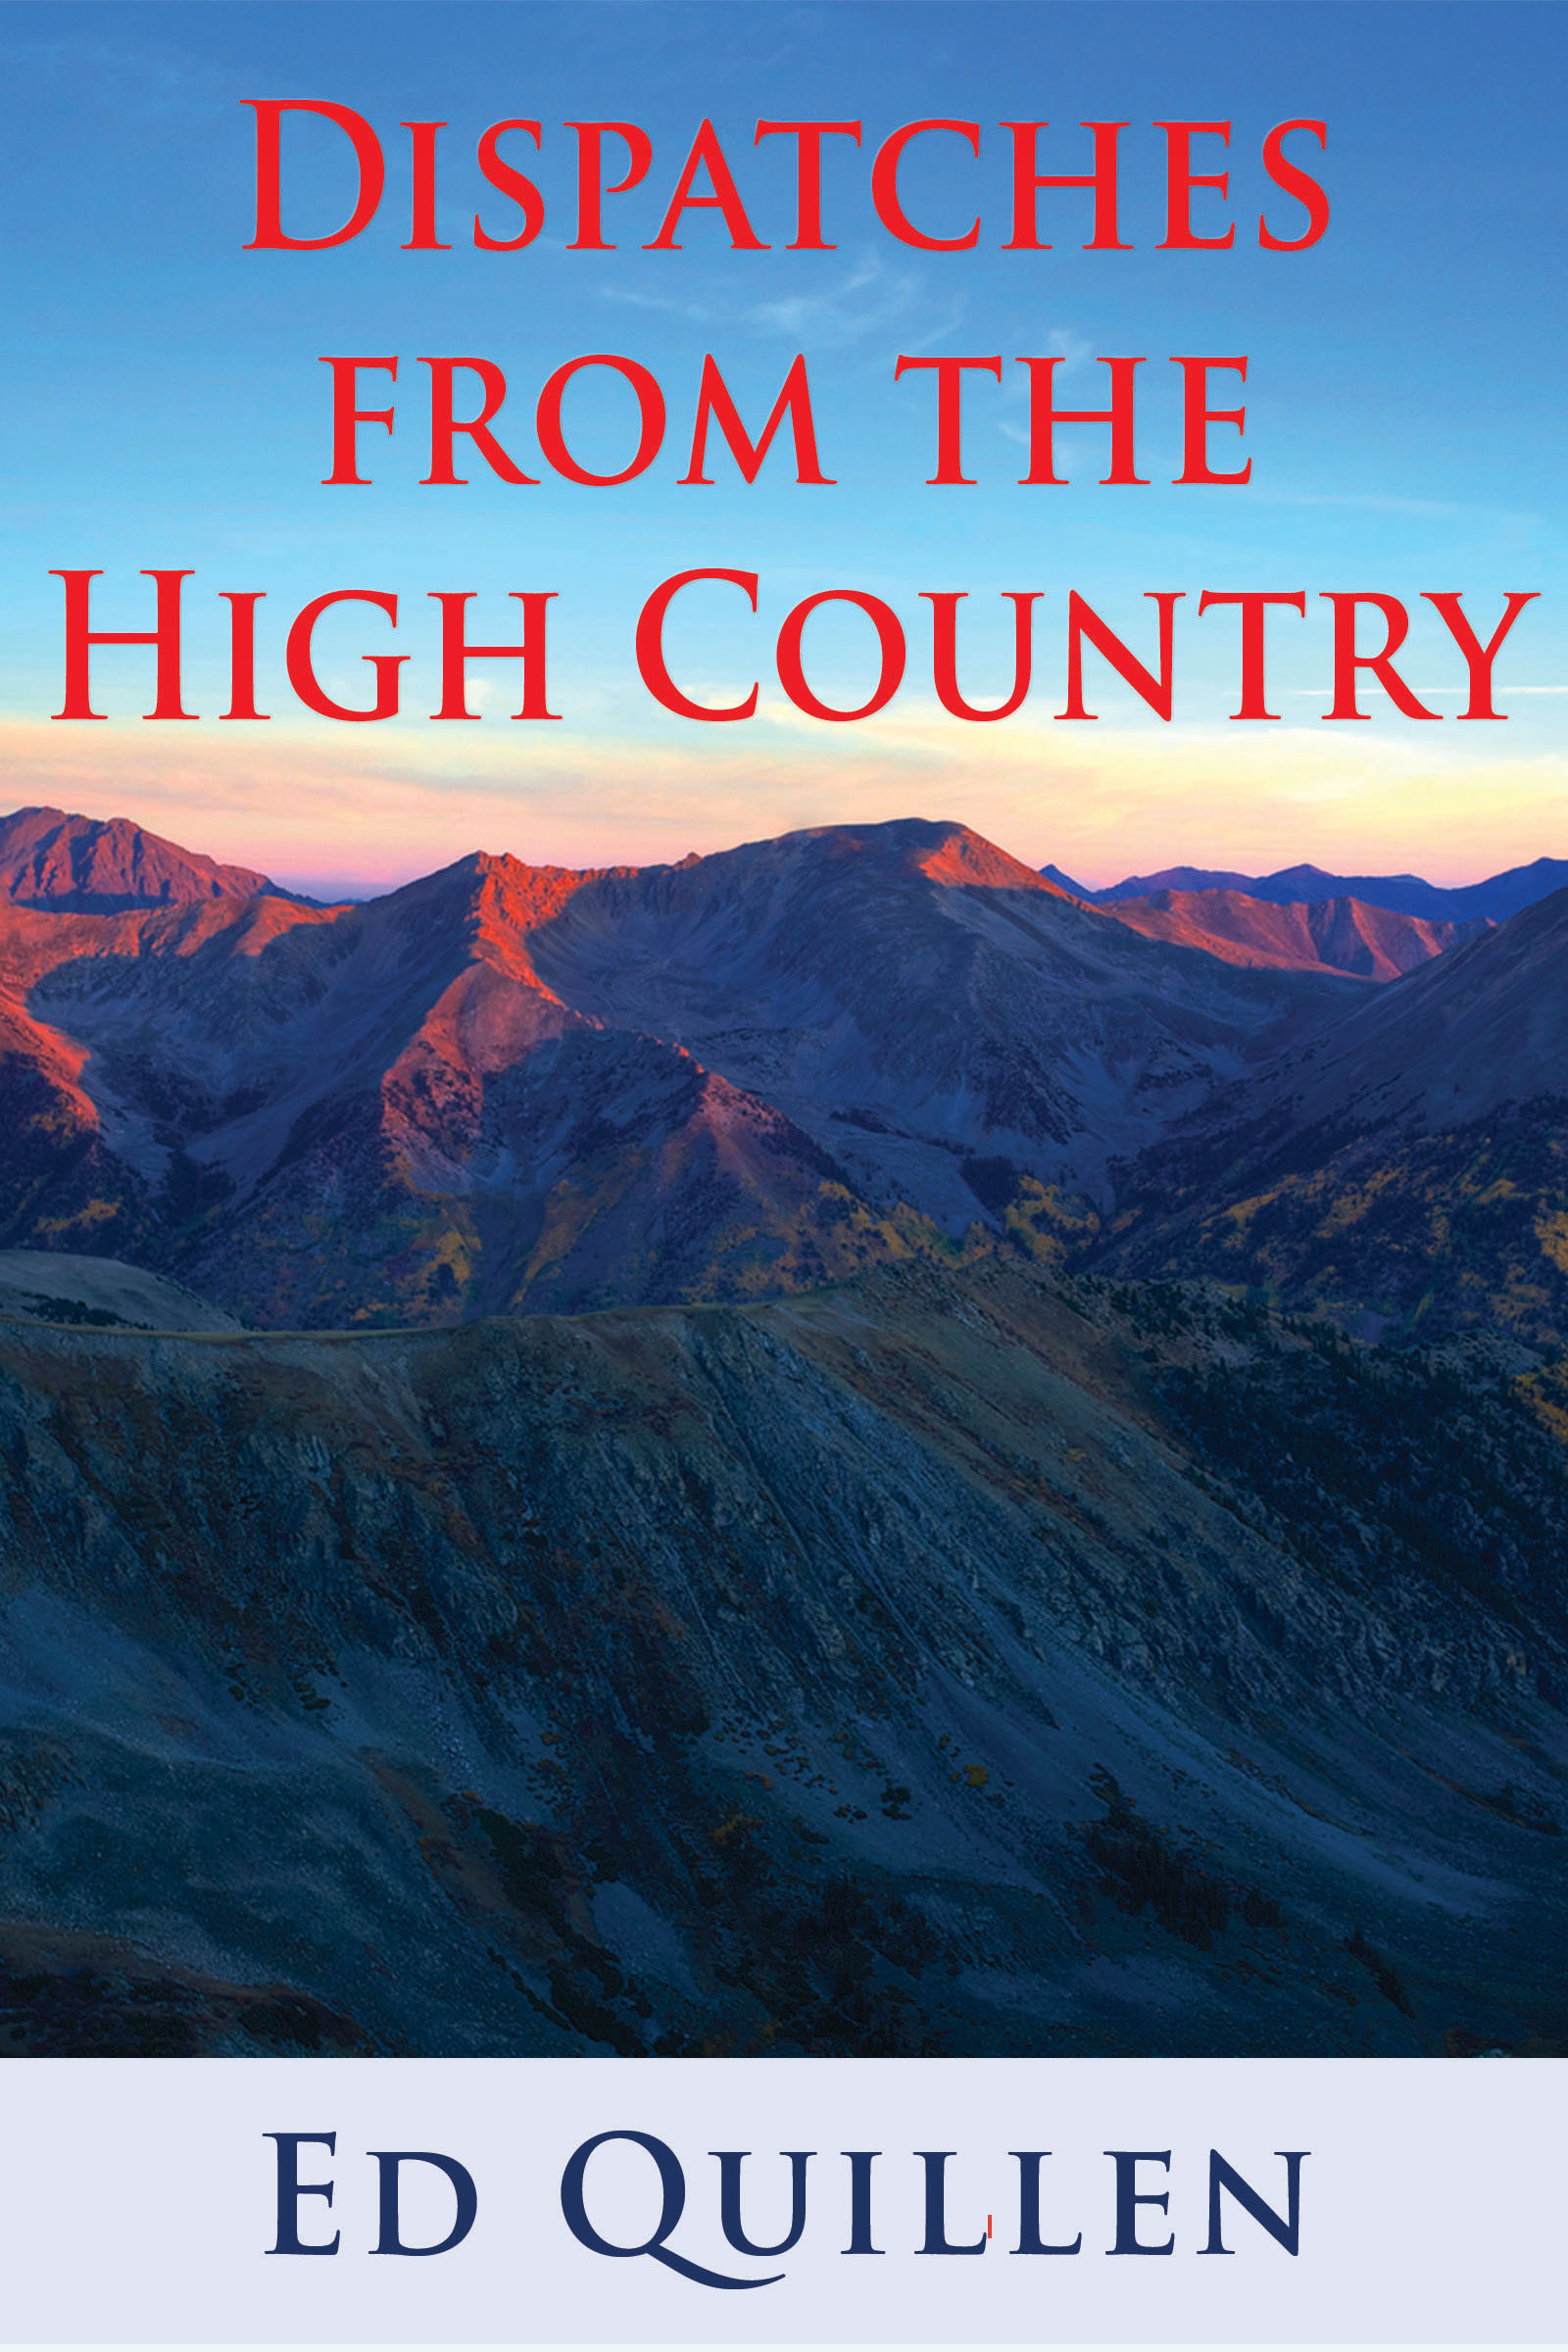 high country news essays In an essay for the magazine high country news, emily guerin '09 describes the parallels she finds between her stints living with her boyfriend in isolated areas out west and in maine, and.